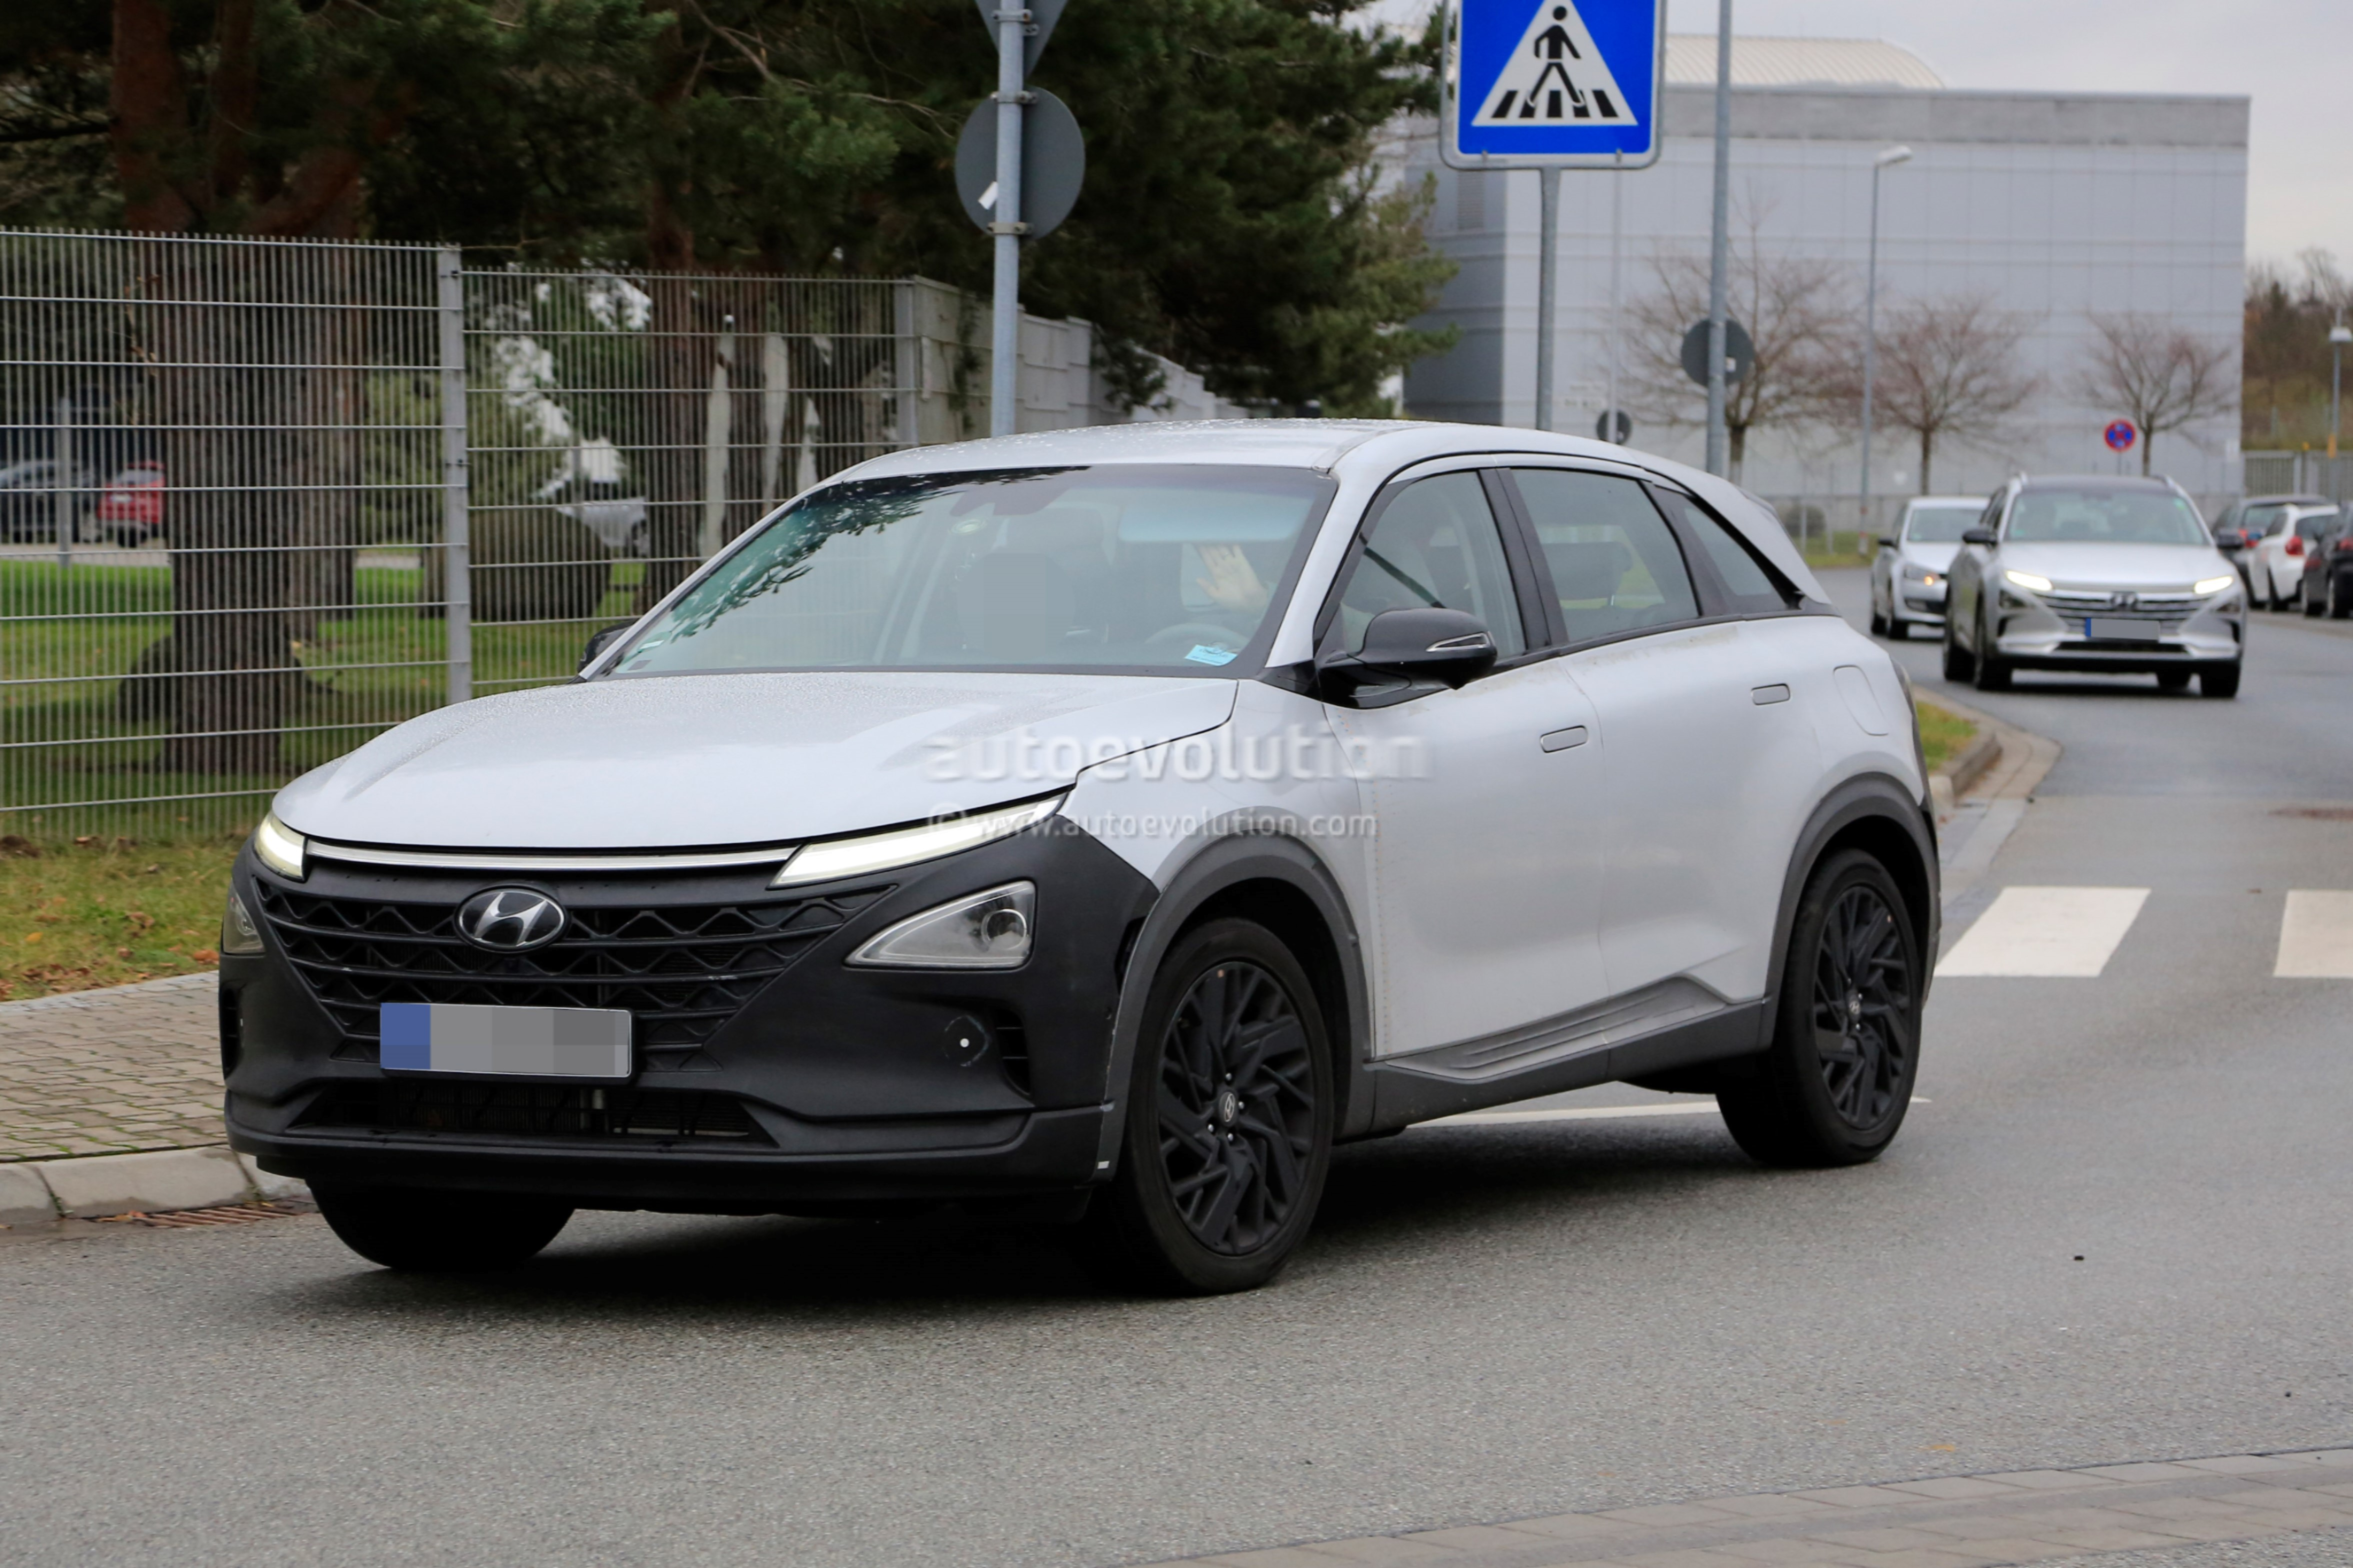 New Hyundai FCEV Name To Be Revealed At CES 2018